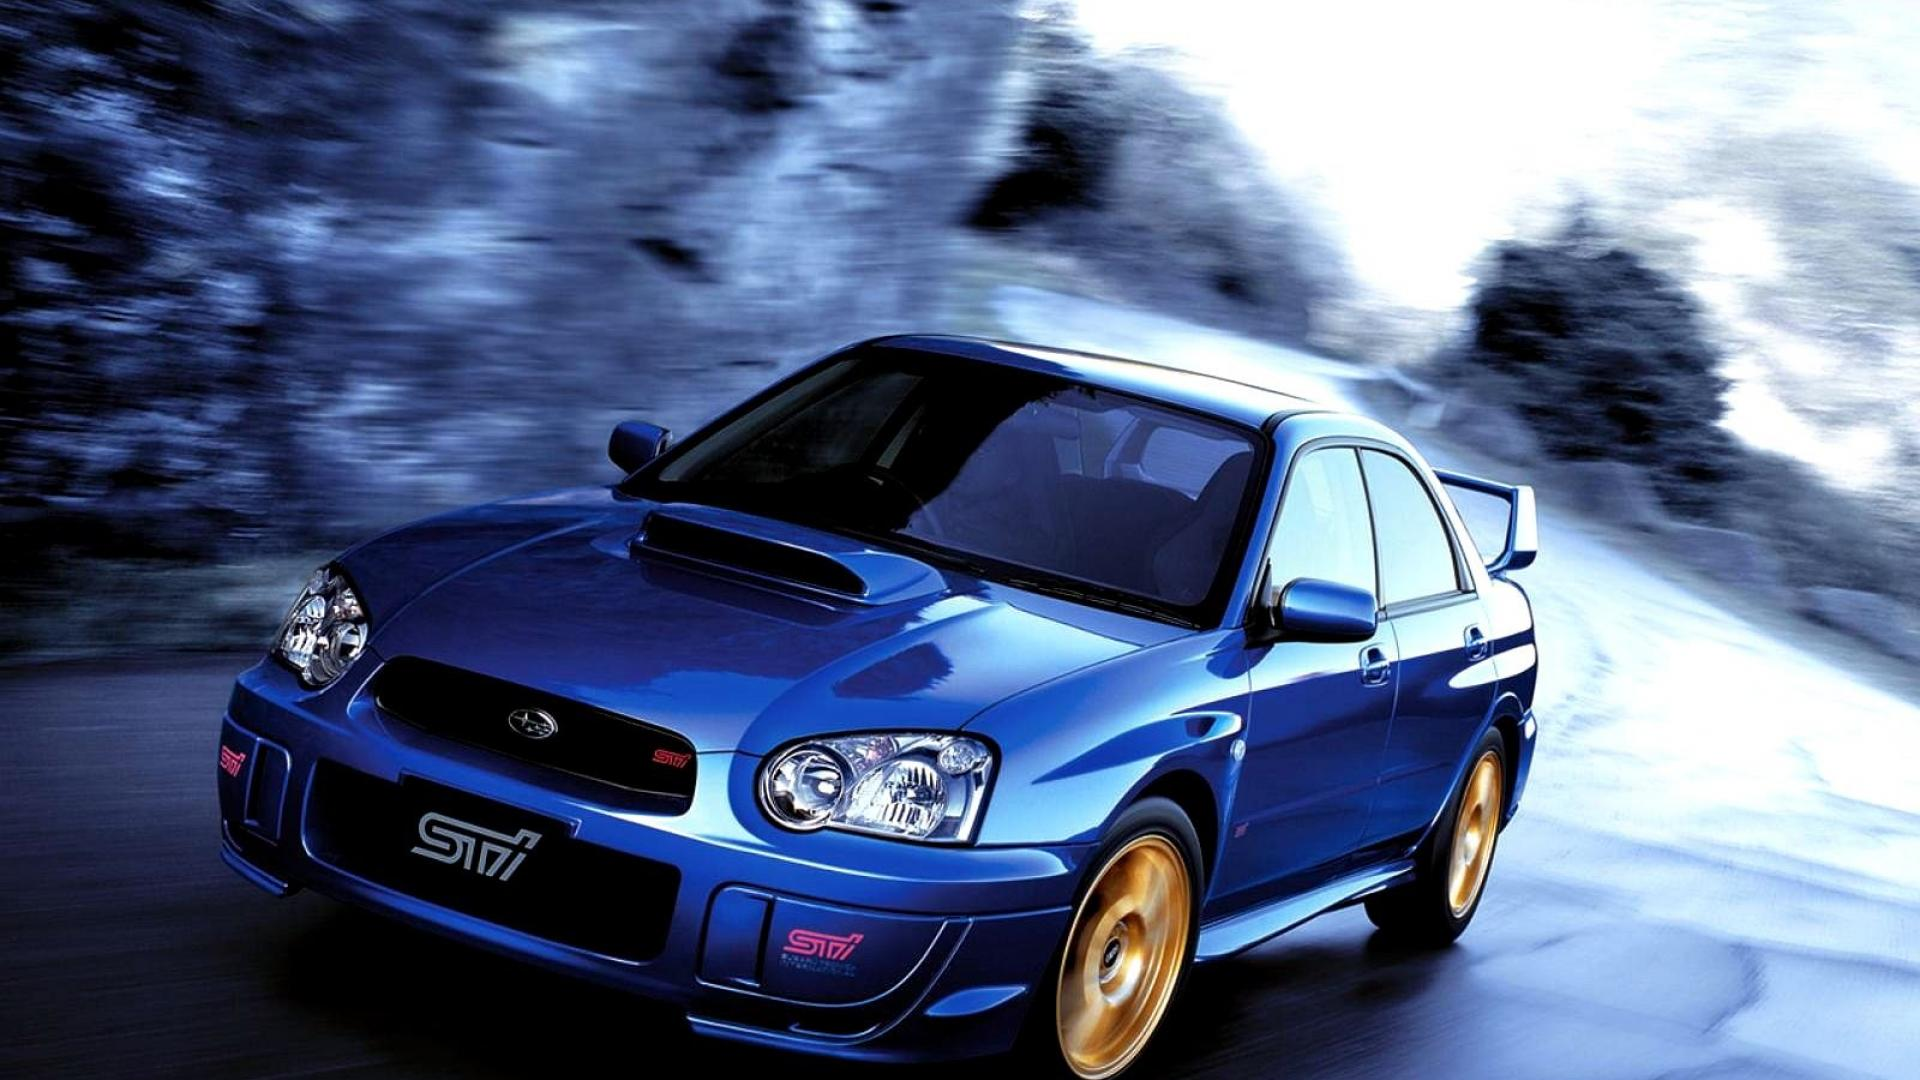 2004 subaru impreza wrx sti with Subaru Impreza Car Hd Wallpaper 1080p on The 5 Greatest Rally Cars Of All Time besides First Drive 2018 Subaru Wrx And Wrx Sti also 04 STi 6904643 additionally Gaming Wallpapers likewise 2000 Subaru Impreza Pictures C3481 pi13530348.